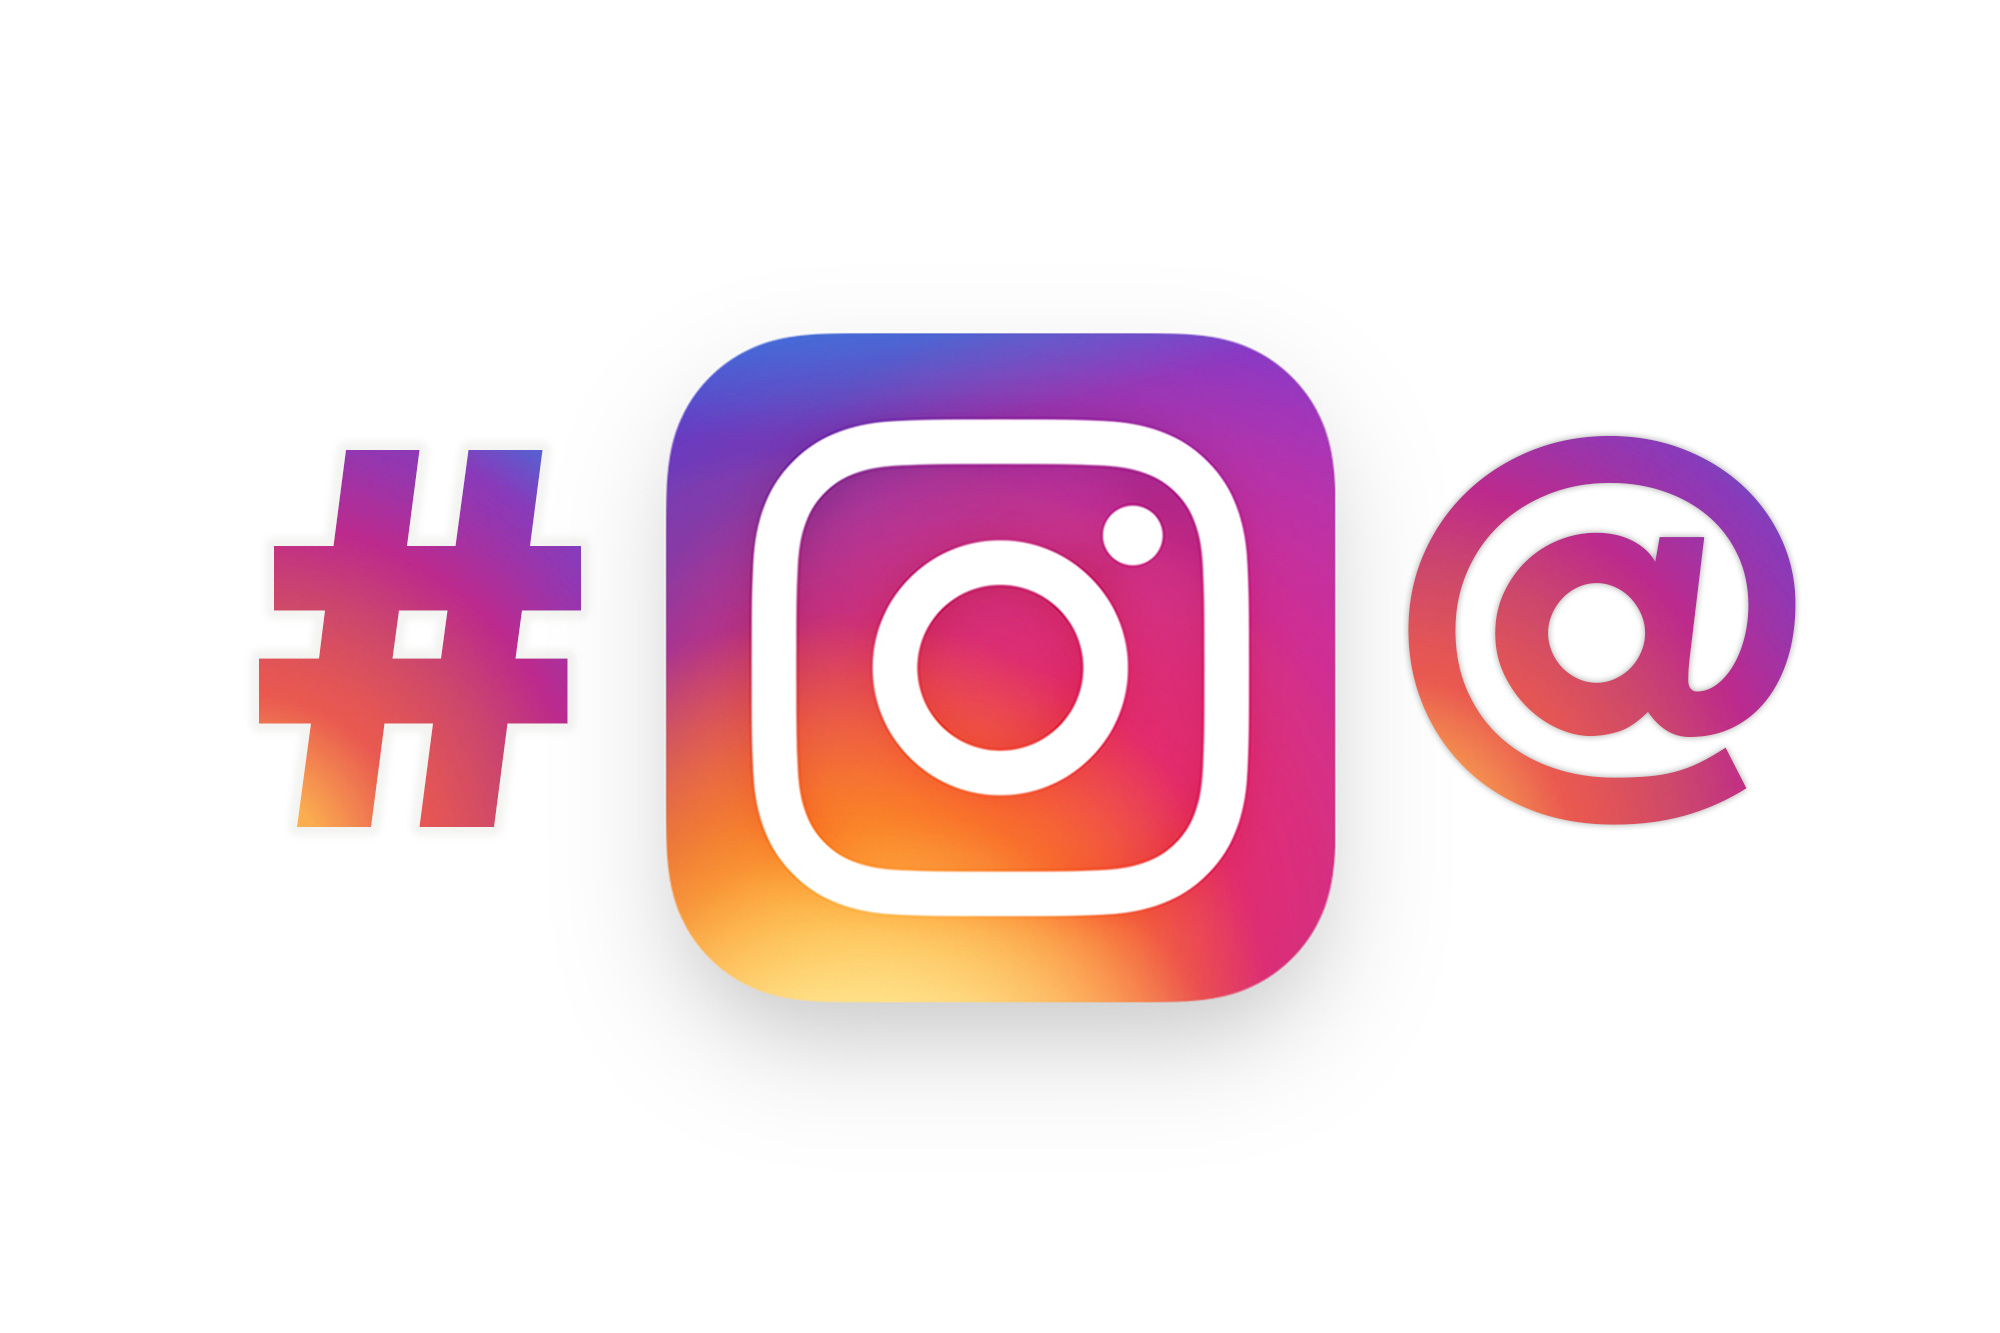 Instagram Hashtags Not Working? Here Are 9 Reasons Why